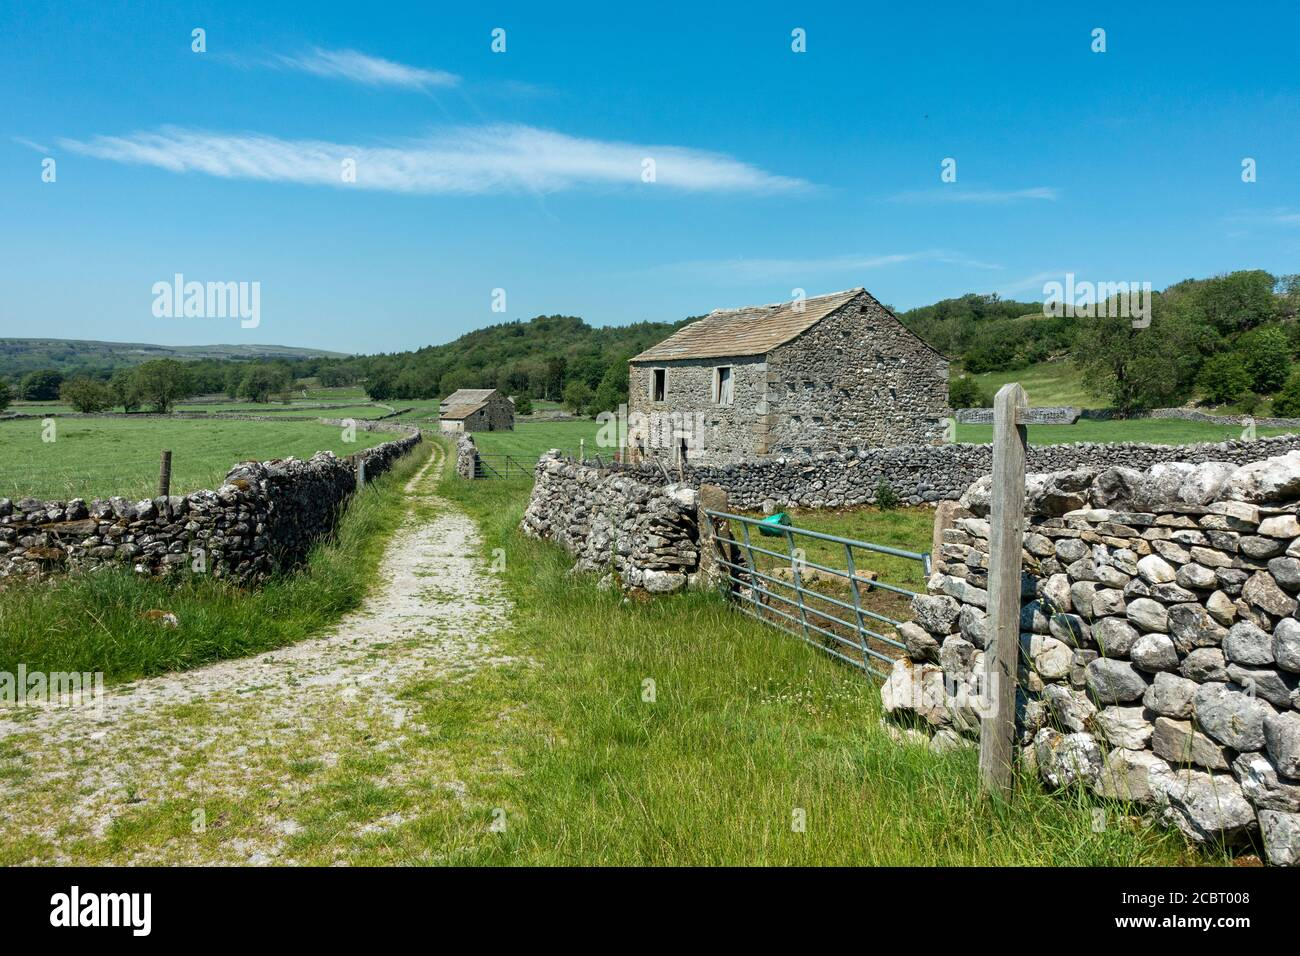 UK landscape: Looking back at Grassington Woods from a limestone walled track with lots of old stone barns in farming pastures on a hot summer's day, Stock Photo